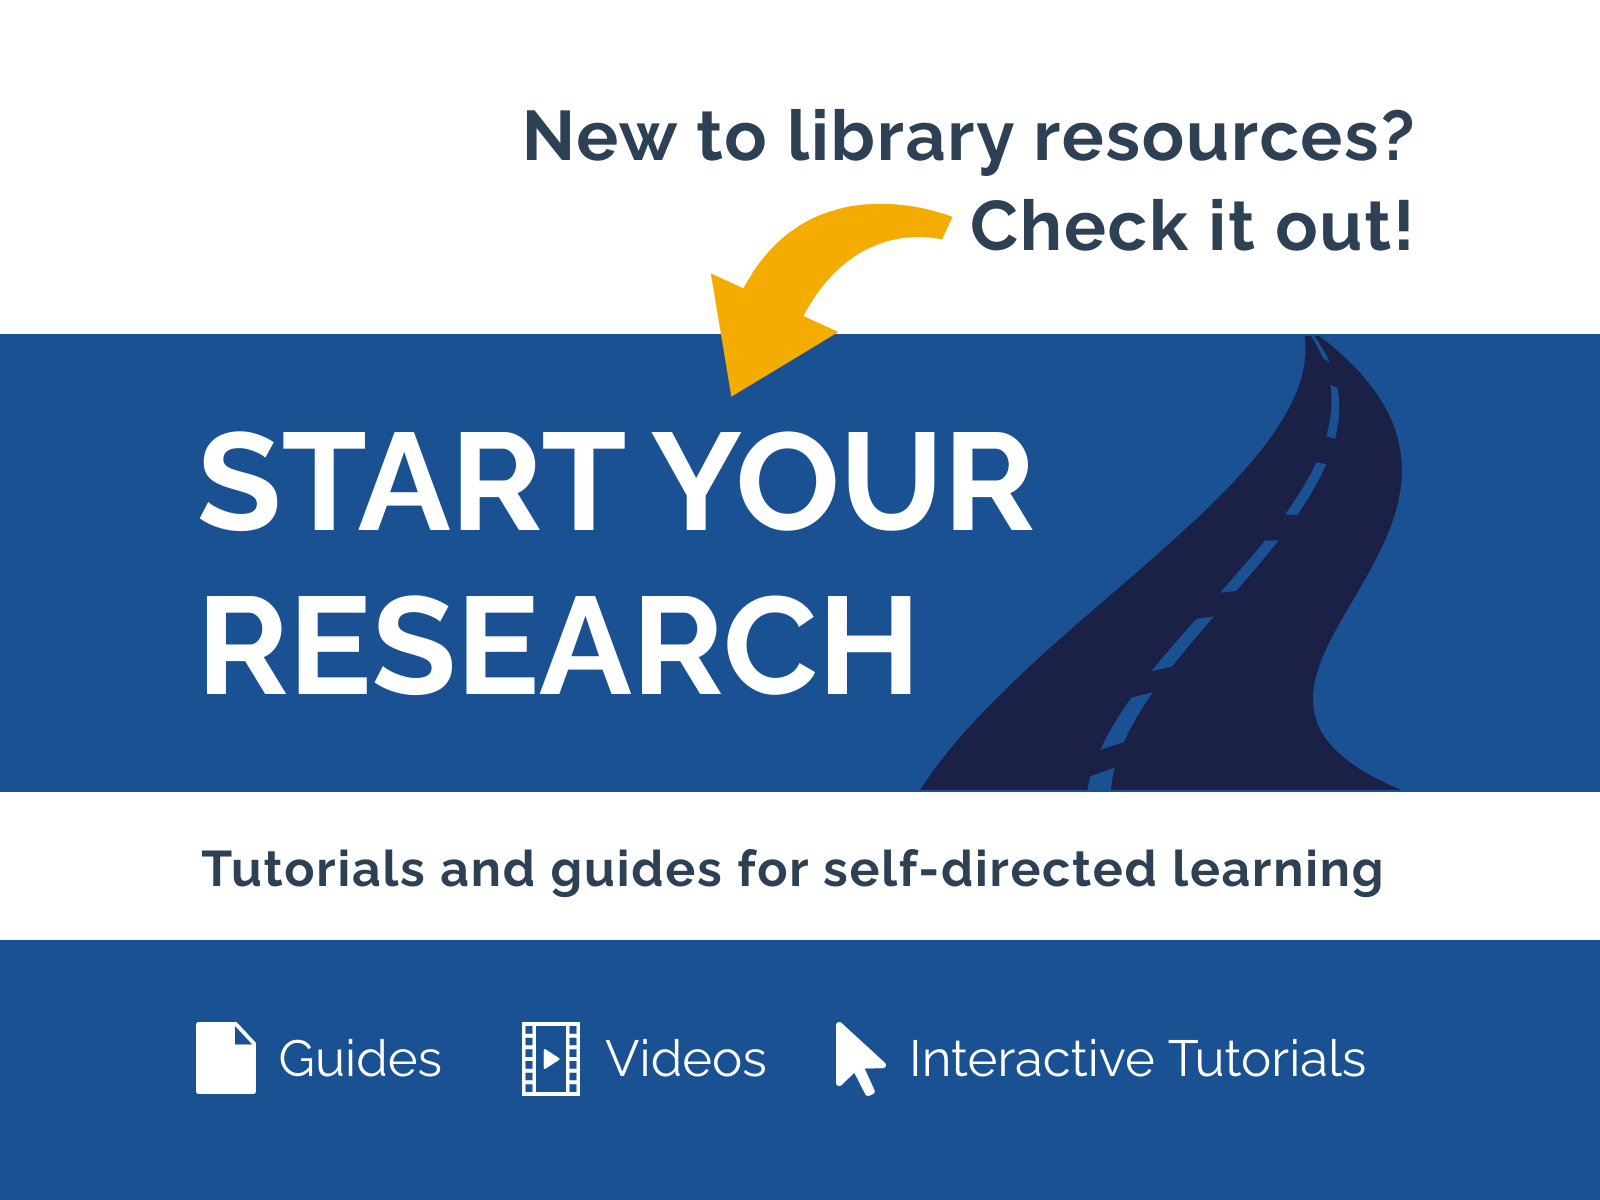 New to library resources? Check out our Start Your Research page!